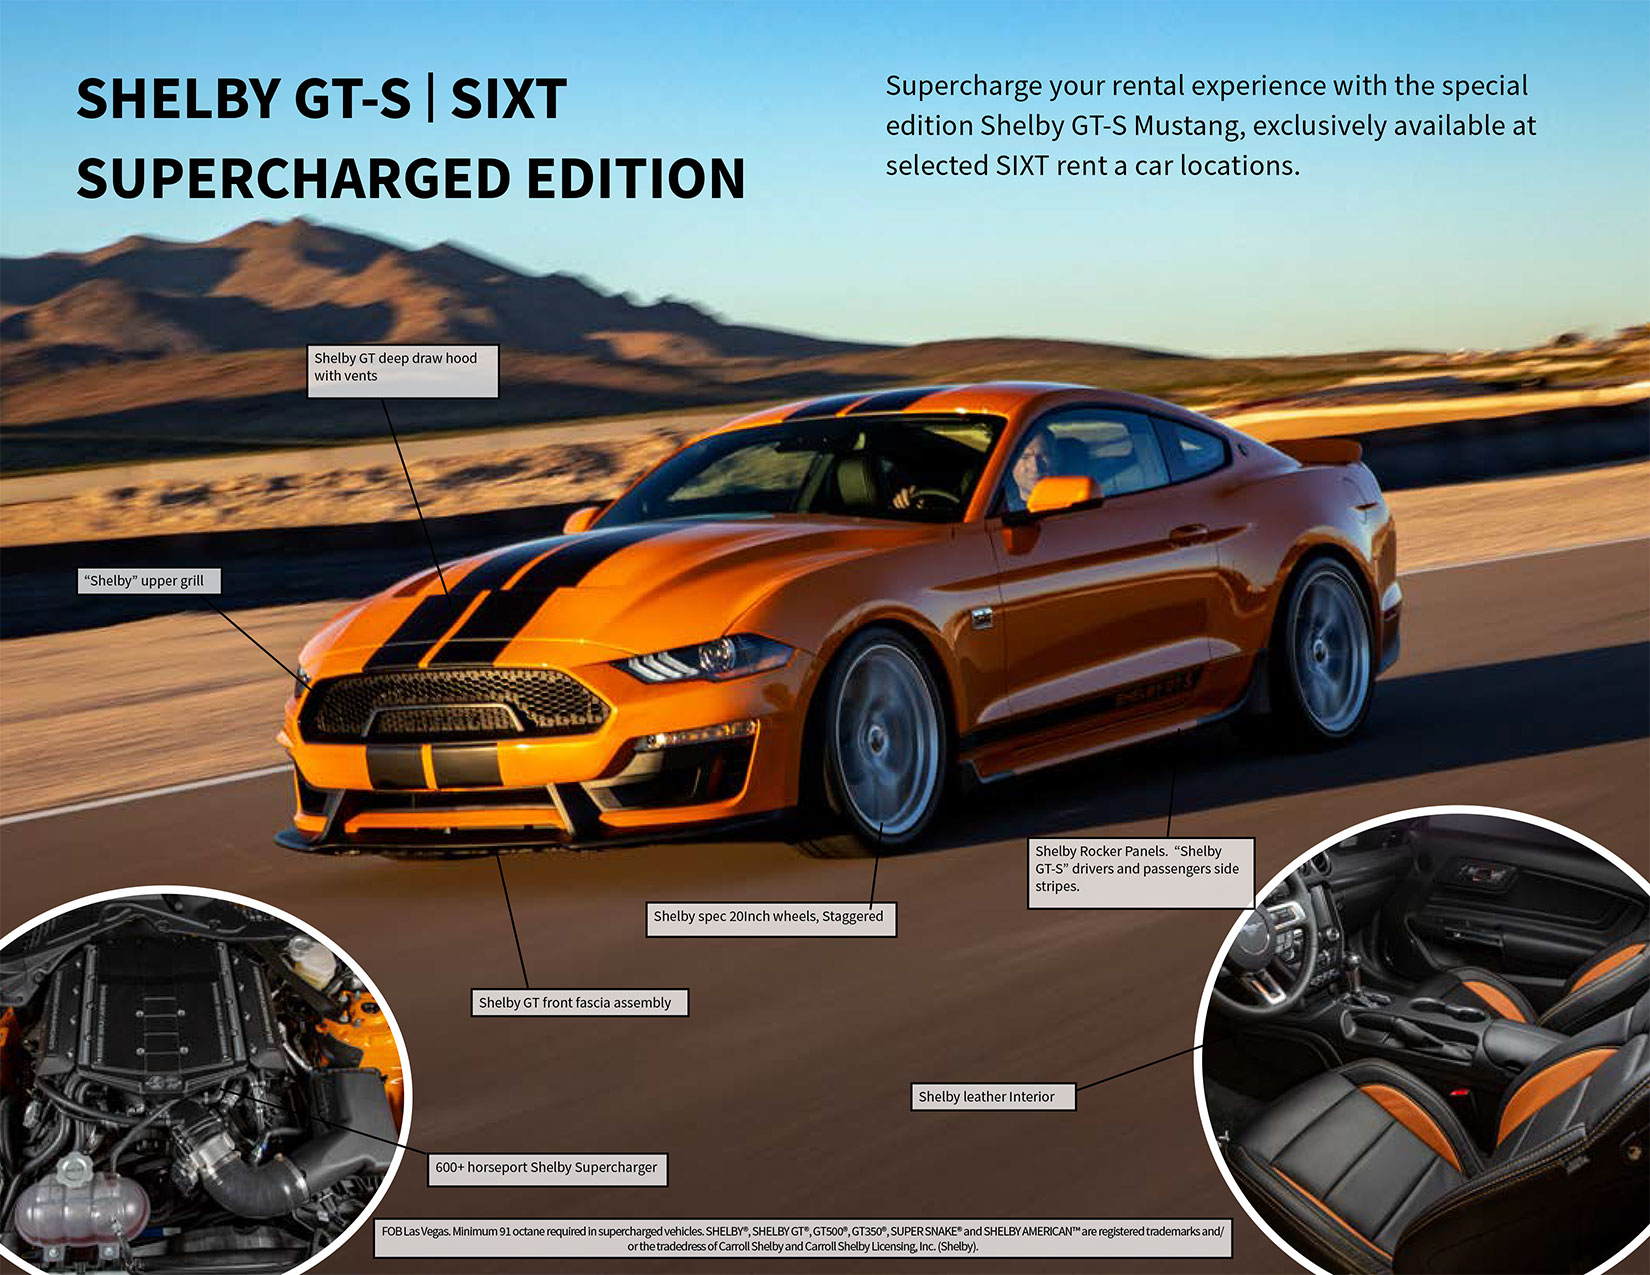 Shelby GT-S | SIXT Supercharged Edition